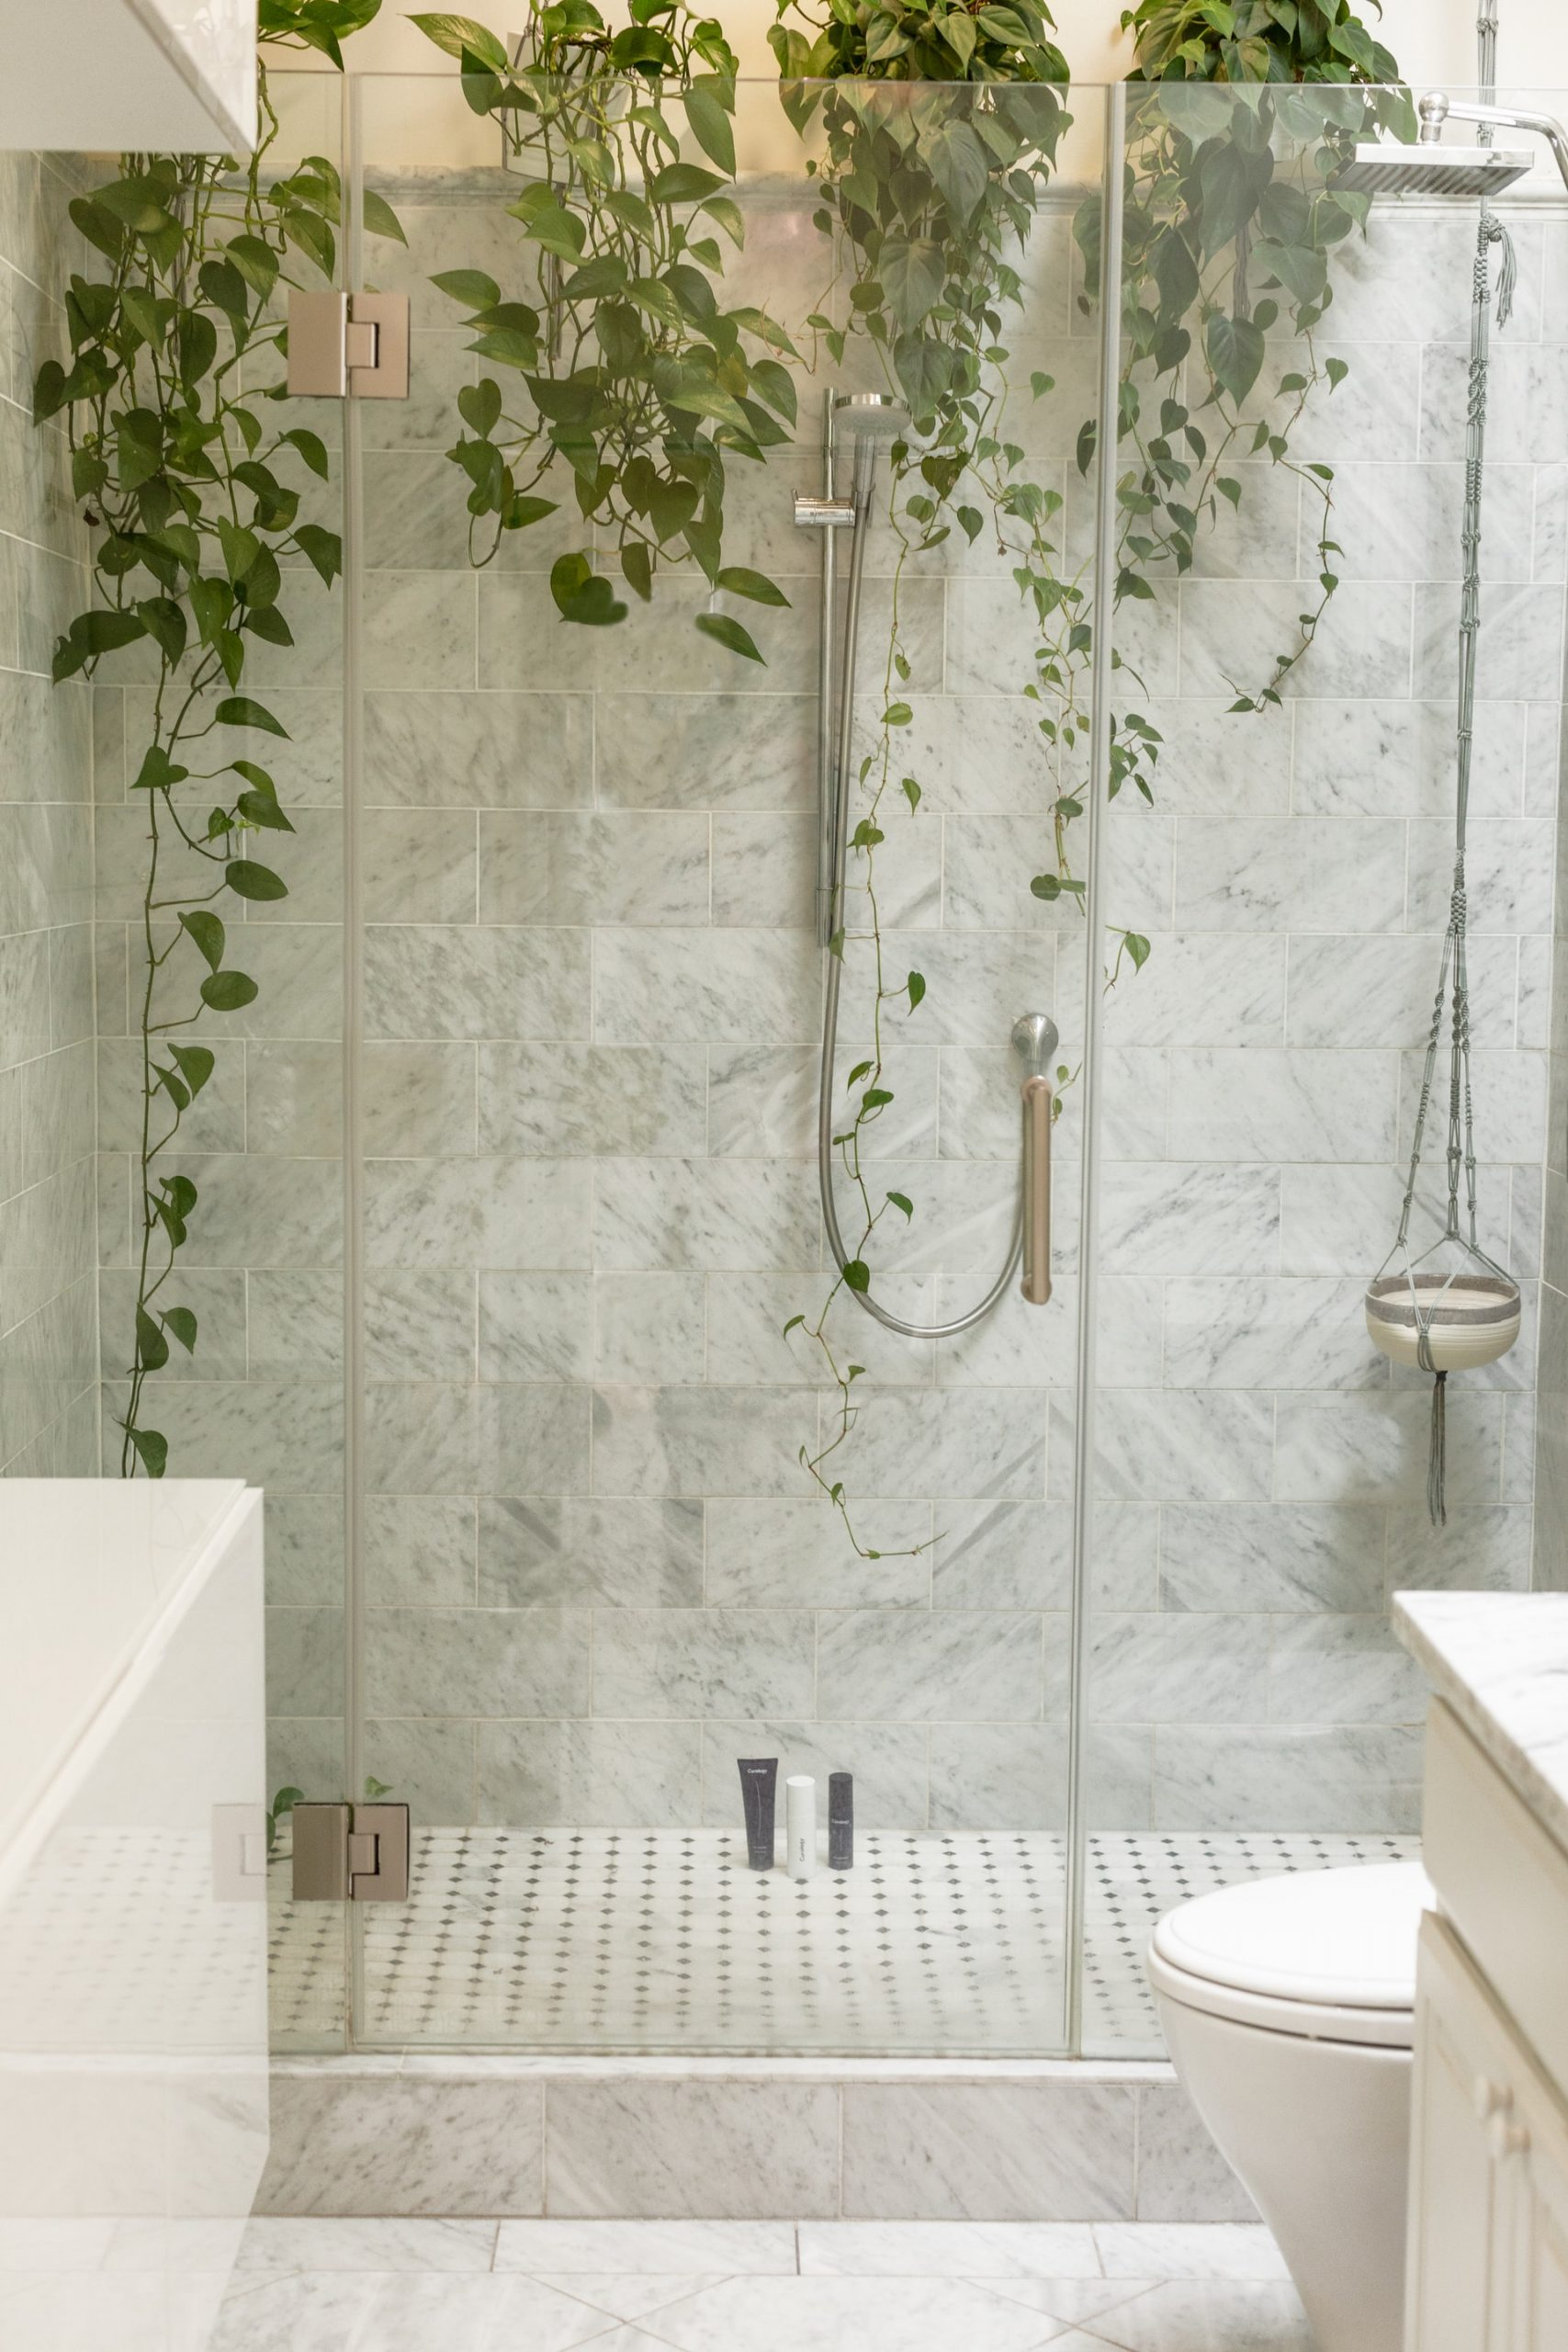 5 Reasons to Install Frameless Shower Screens in Your Bathroom